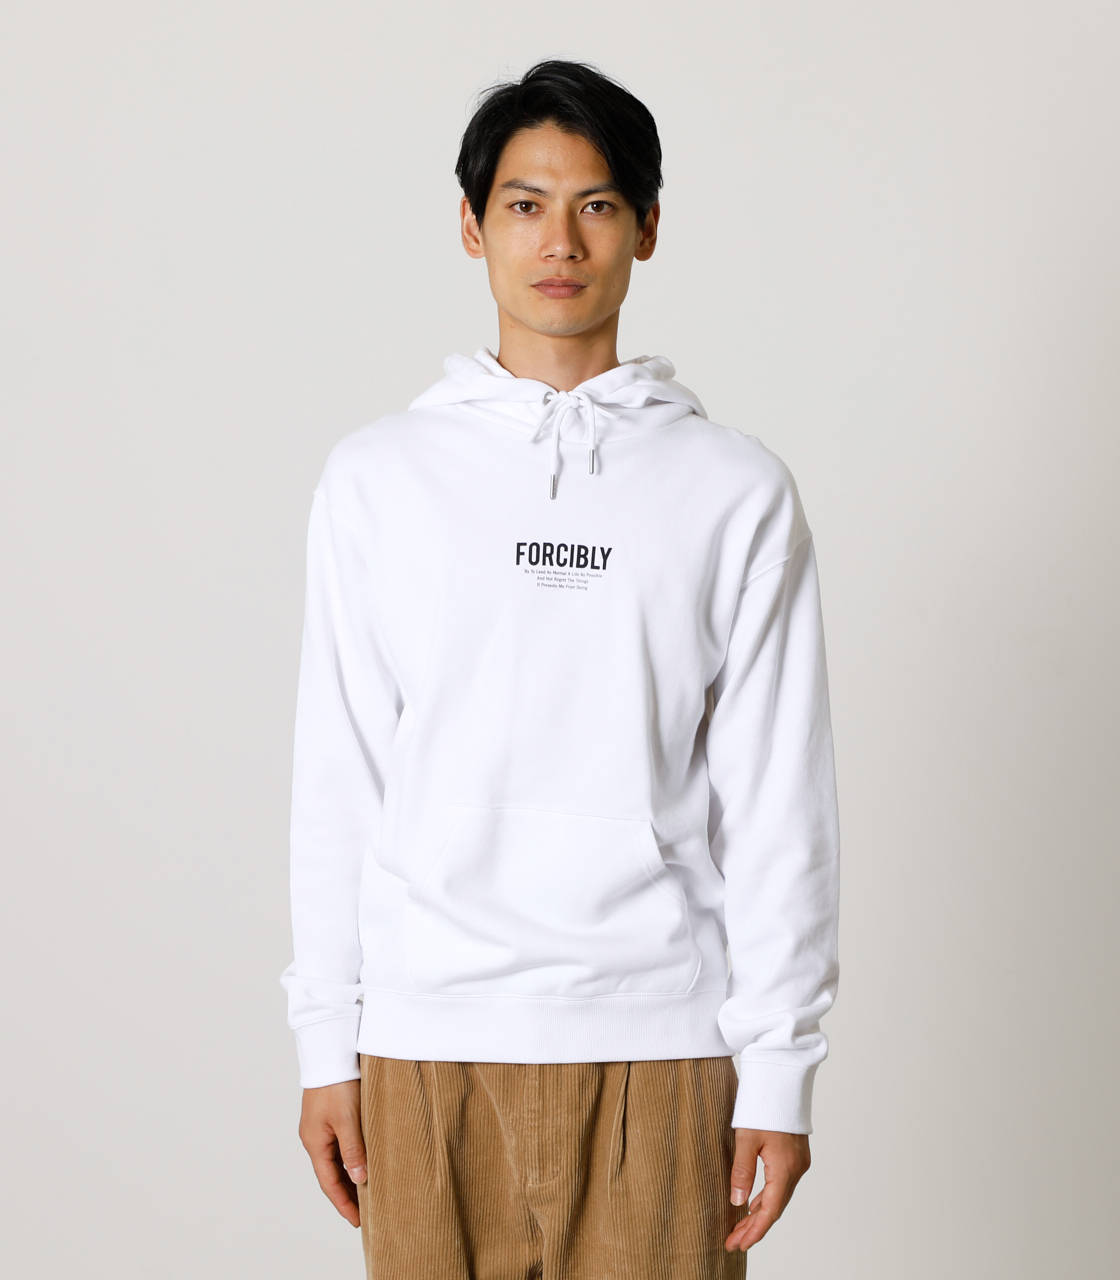 FORCIBLY HOODIE/フォーシブリーフーディ 詳細画像 WHT 4